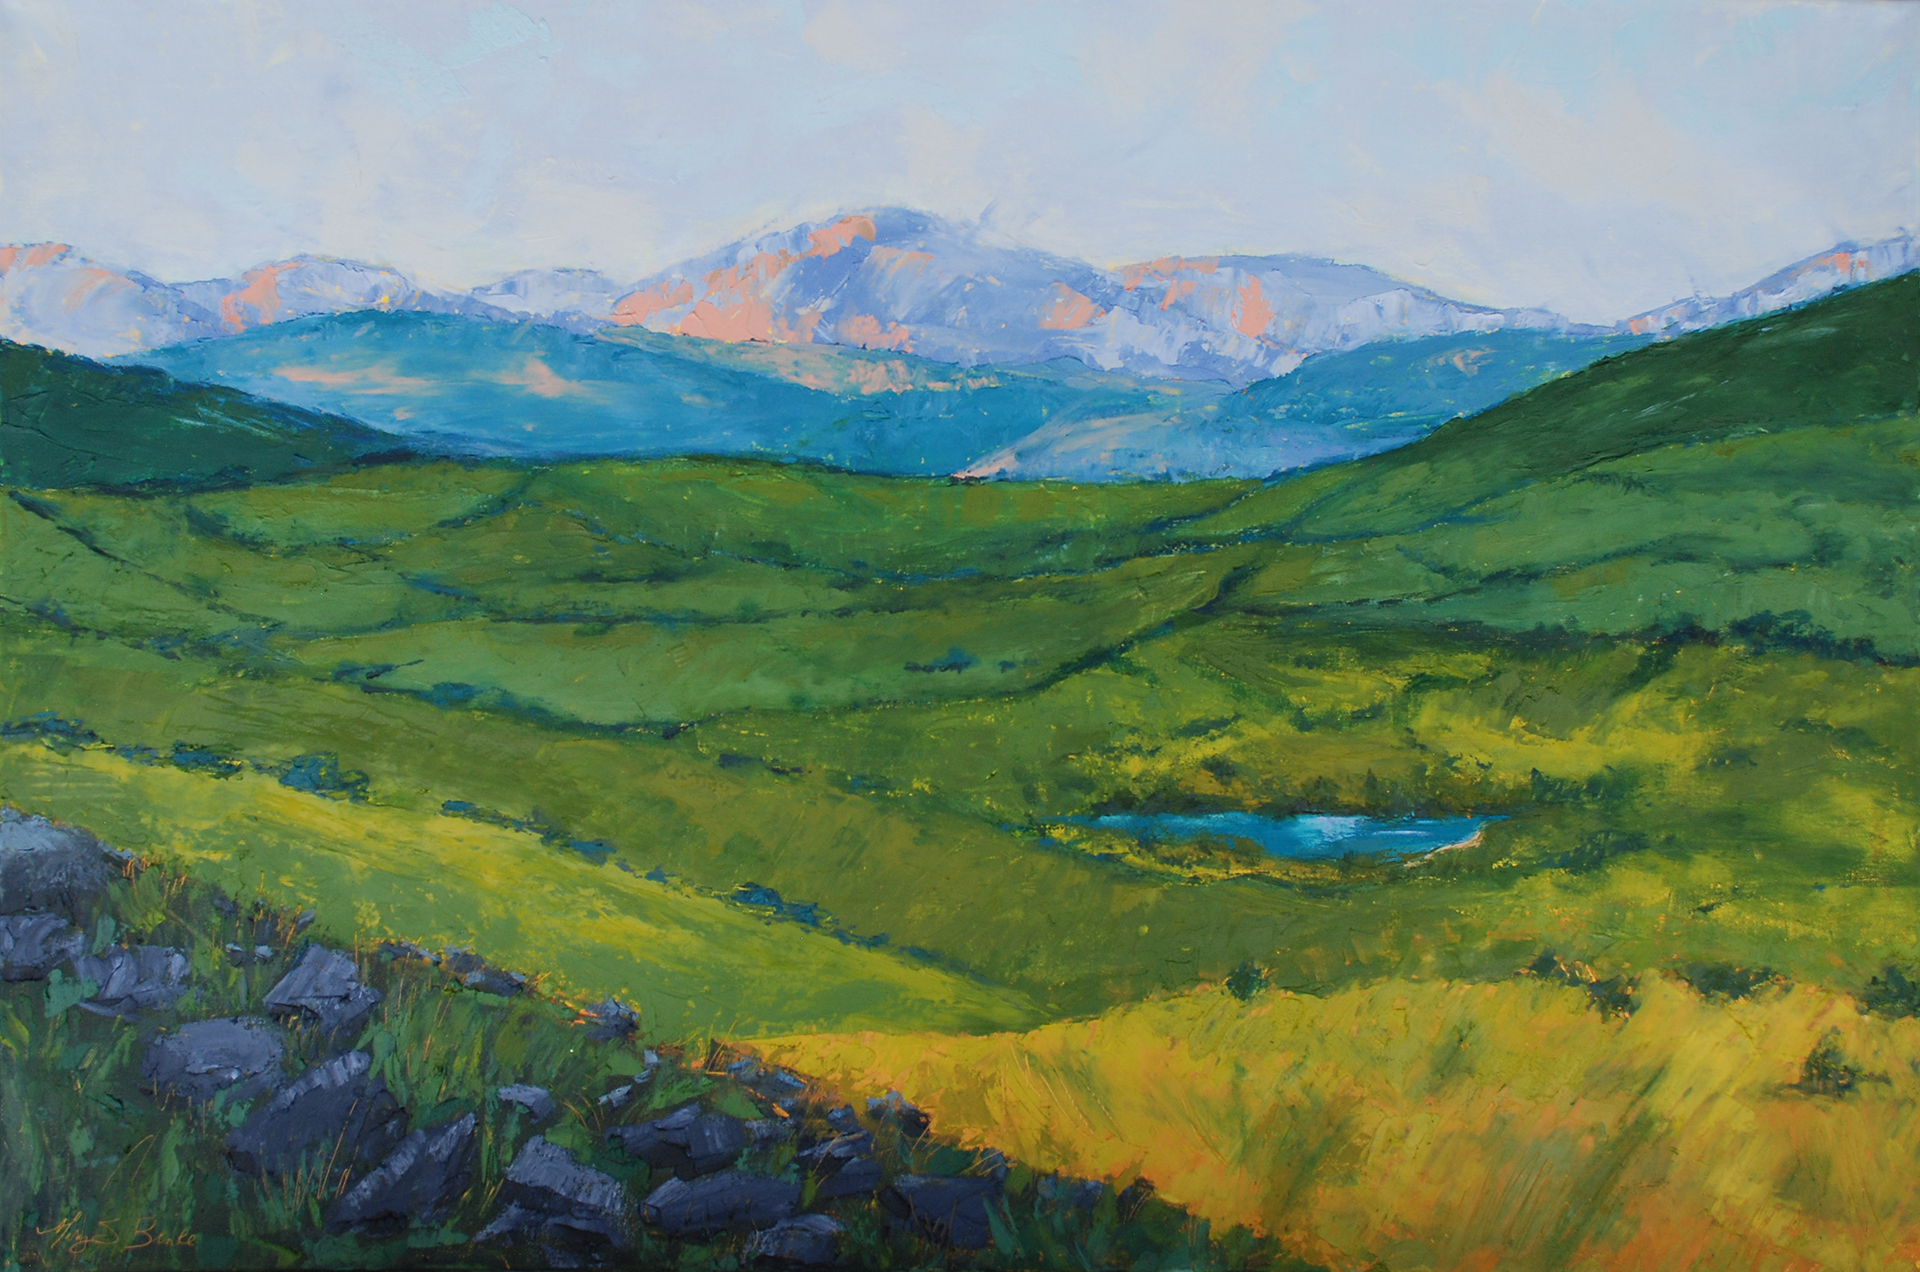 """This lush oil """"imagined landscape"""" painting was inspired by visits to Ireland, Northern Ireland, and Scotland. I love the patchwork of greens seen in those areas' fields, and the soft lavender and teal hills and mountains that rise in the background by Mary Benke"""